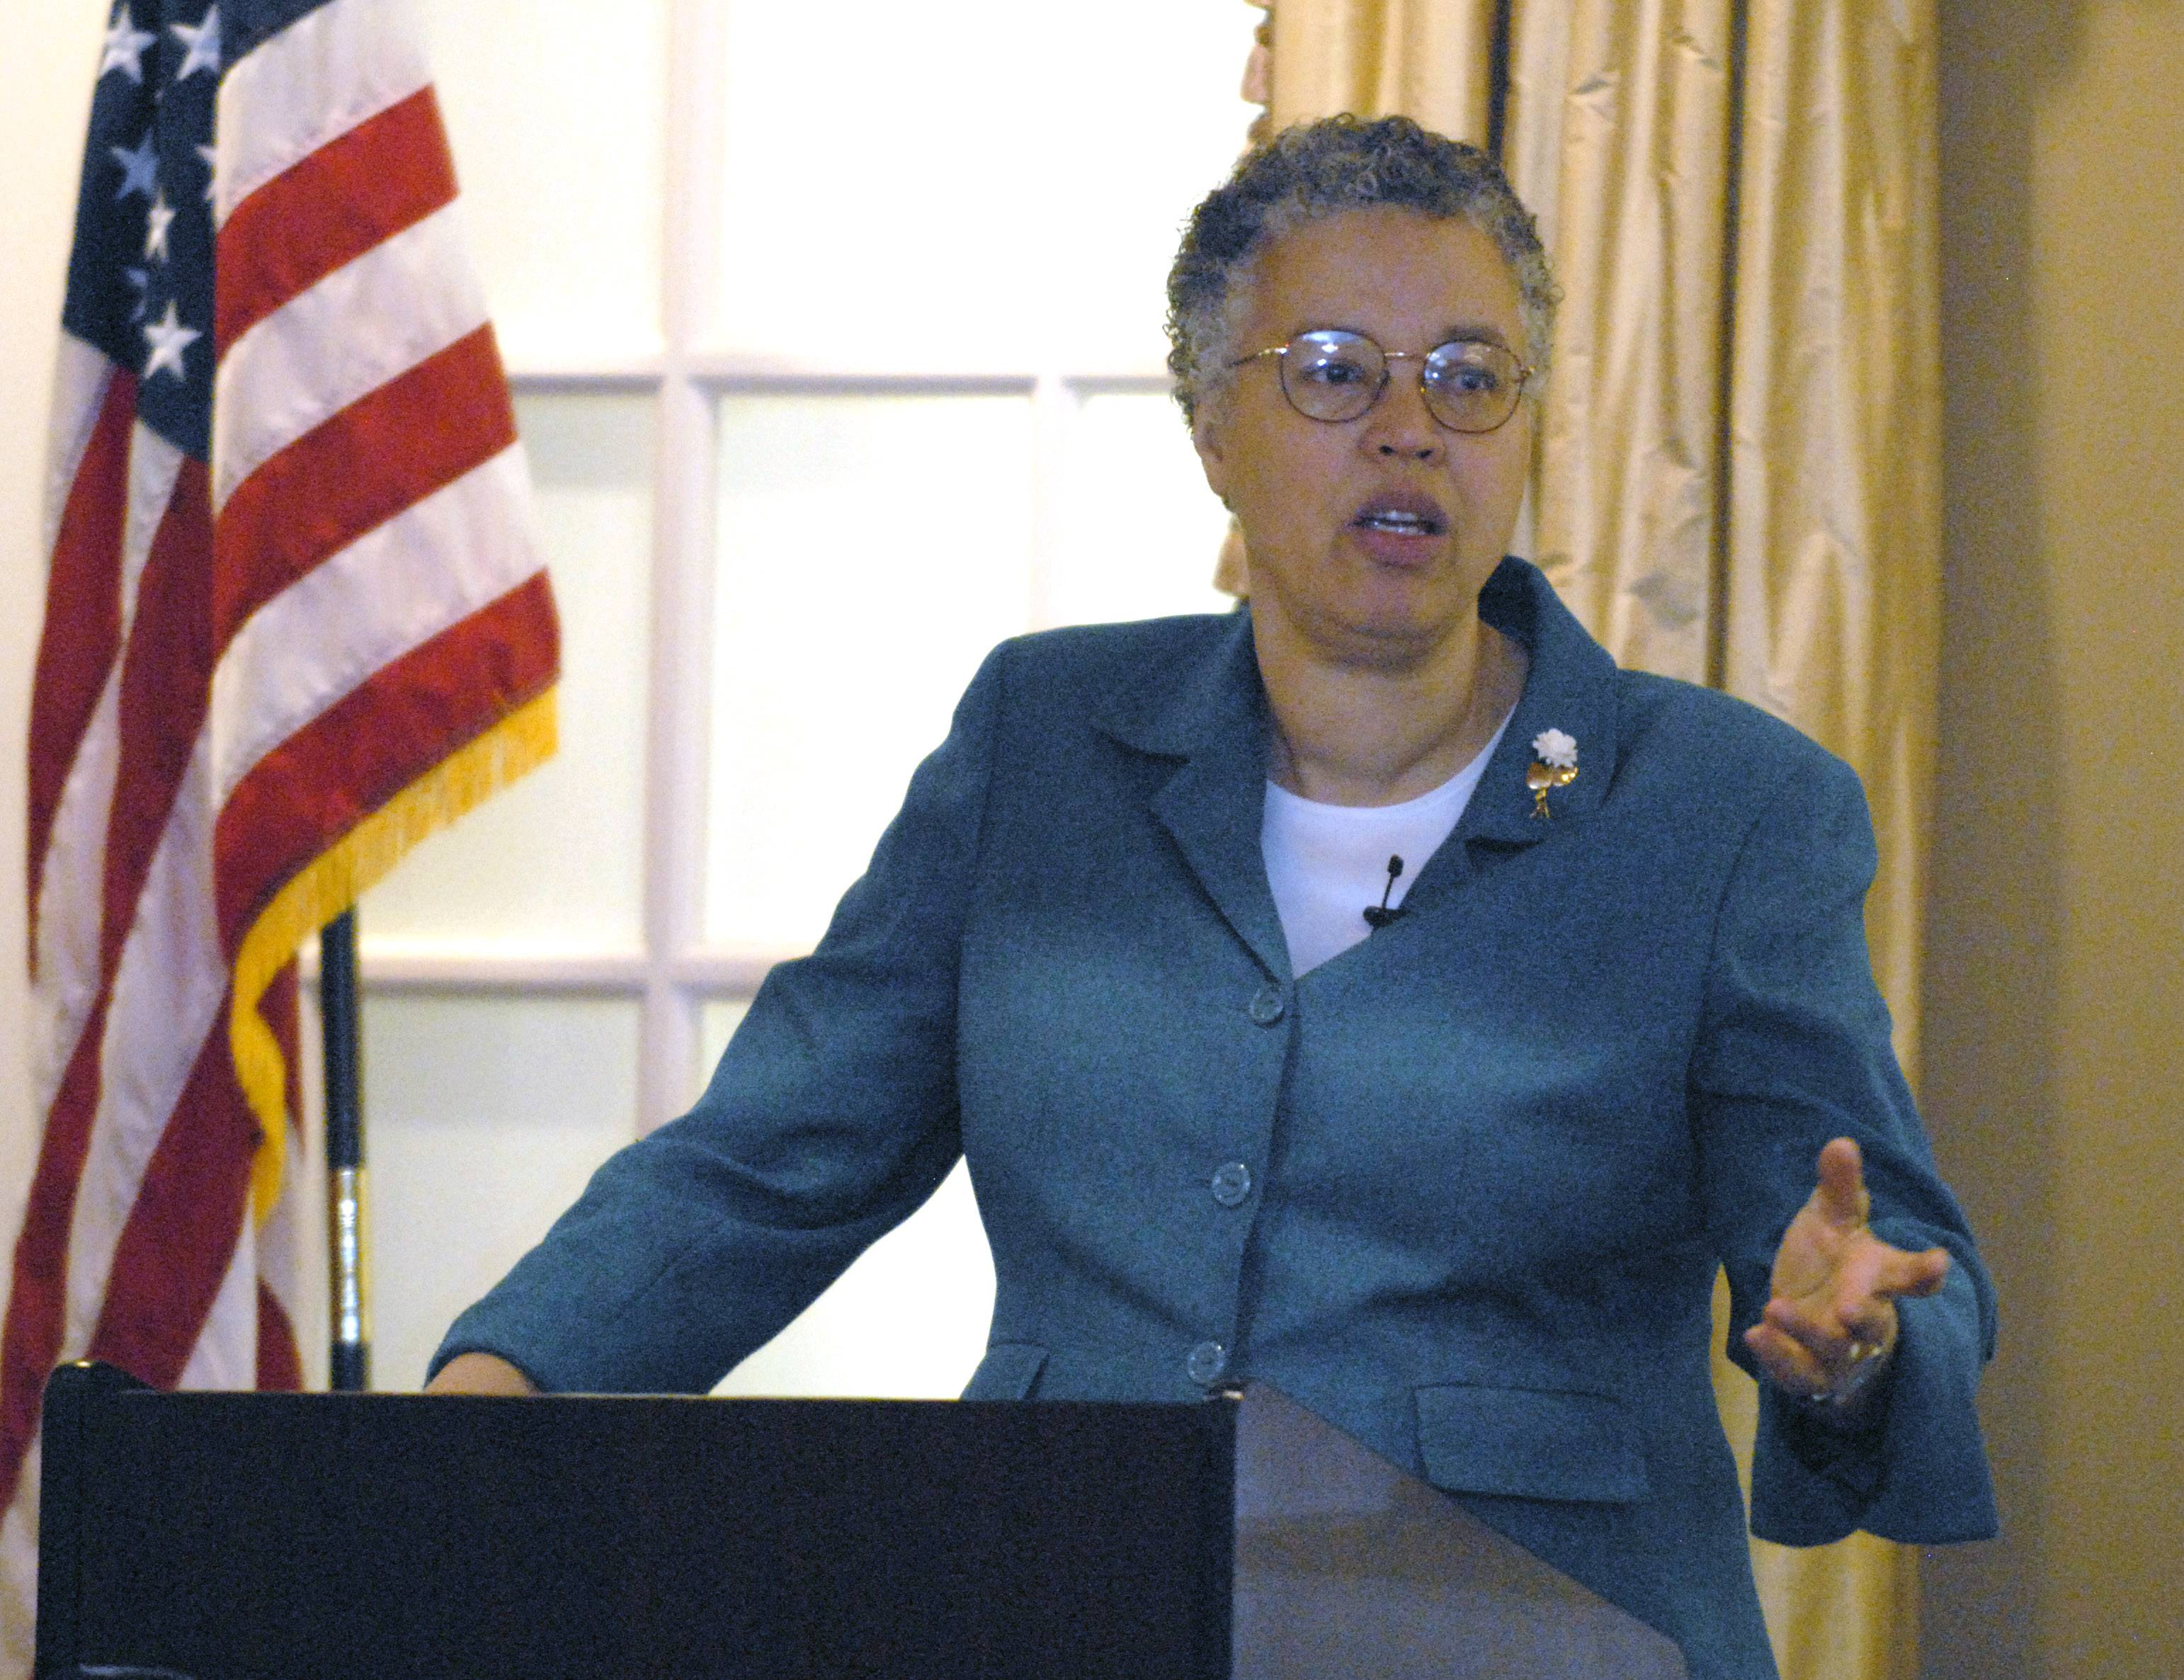 Cook County Board President Toni Preckwinkle announced Tuesday that she will not run for mayor of Chicago, multiple media outlets reported.